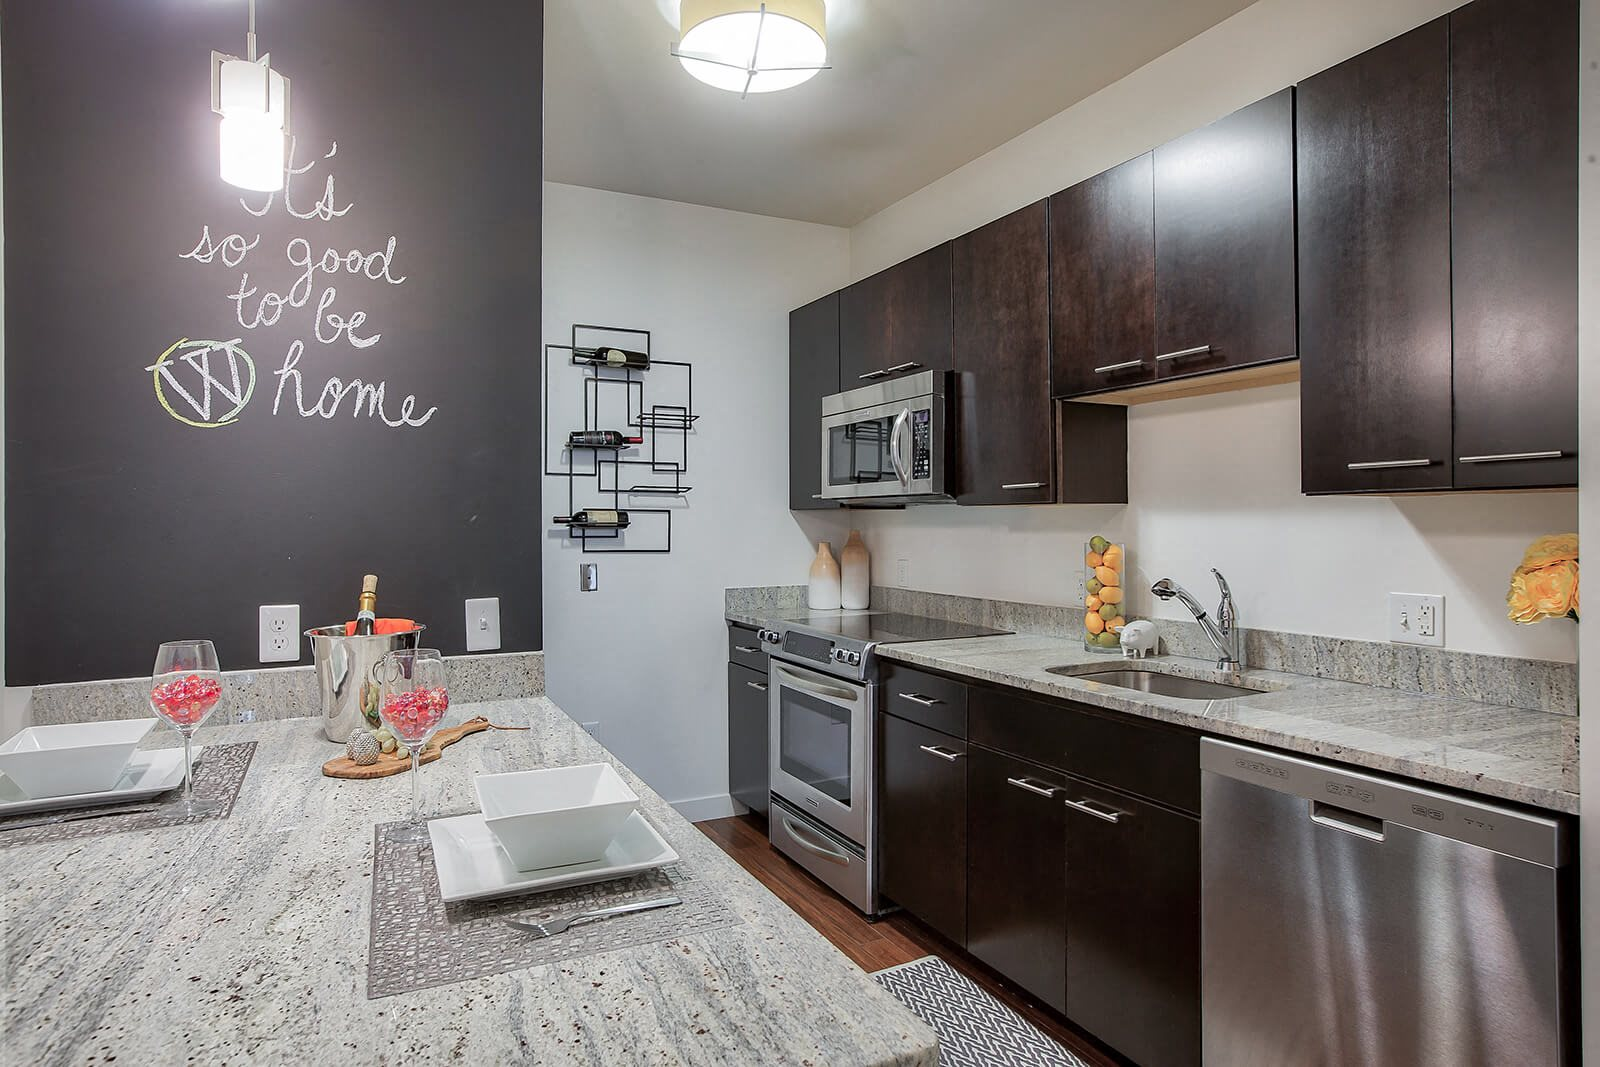 Studio, One, Two and Three Bedroom Apartment Homes at Windsor at Maxwells Green, 1 Maxwells Green, Somerville